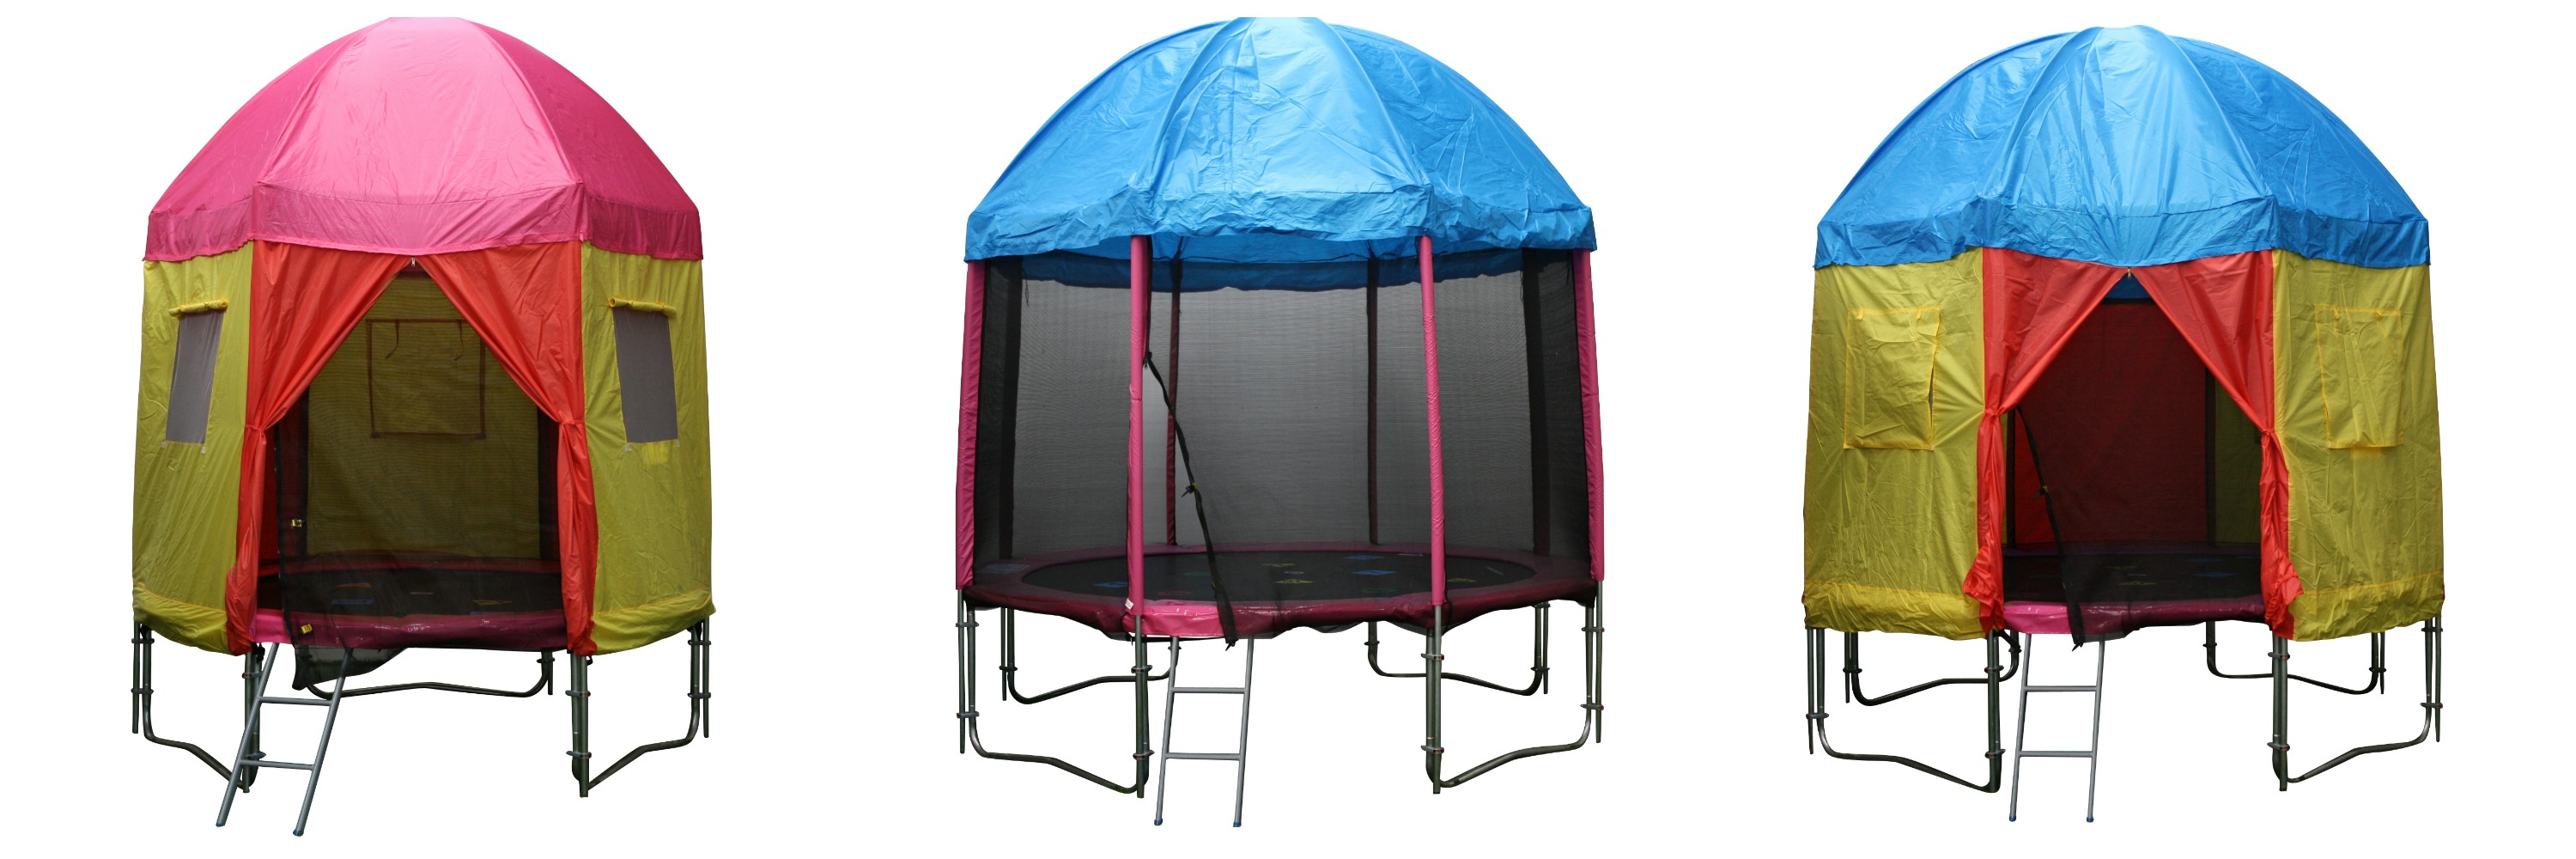 Do We Make Tents And Roofs For Tru0026olines That Are Not Ours? Sc 1 St Oz Tru0026olines Blog. image number 19 of tr&oline roof 10ft ...  sc 1 st  memphite.com & Trampoline Roof 10ft u0026 14ft Jumpking Butterfly Canopy Tru0026oline ...